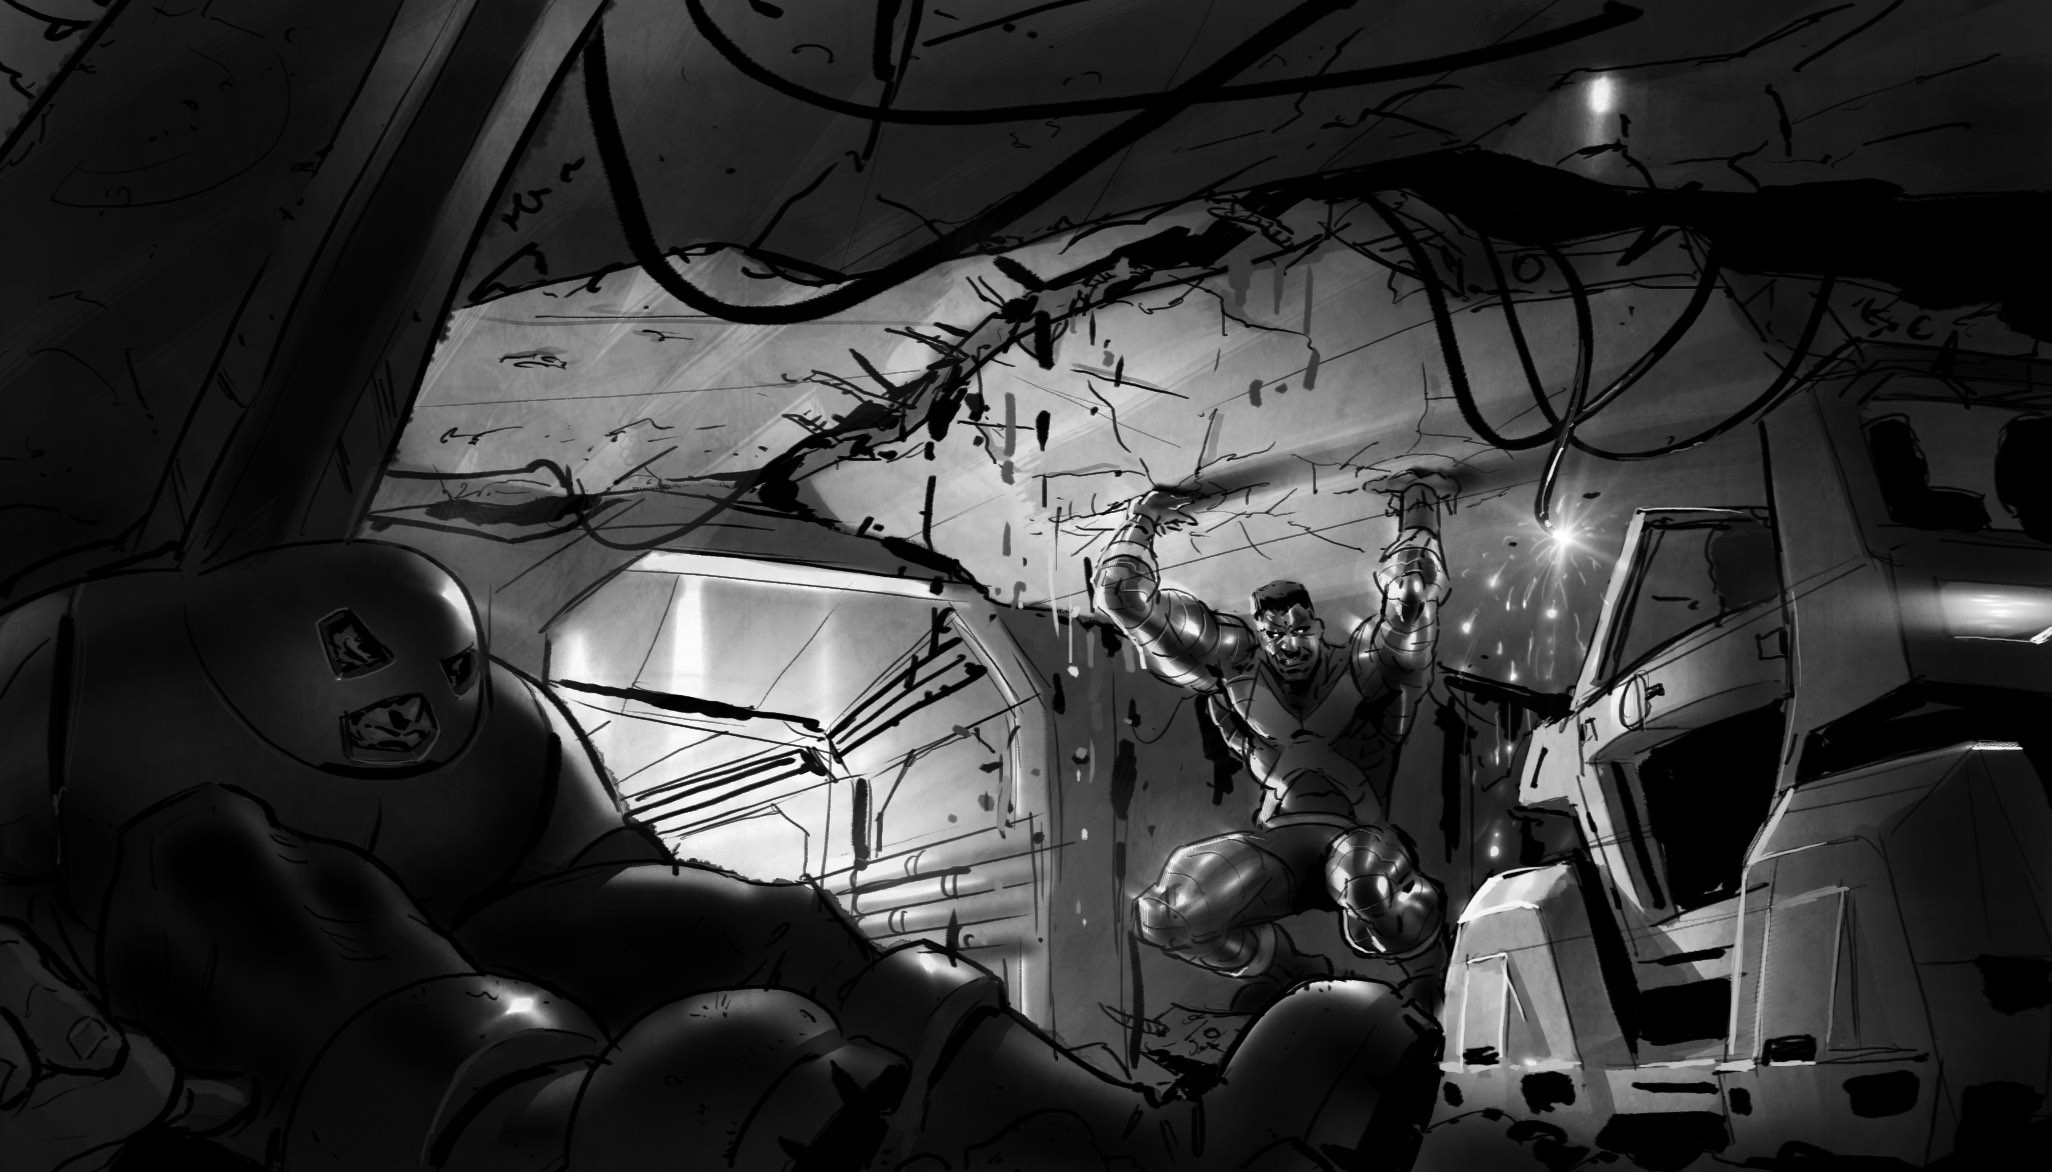 --we see where Jugs has knocked out a pillar. The ceiling is collapsing! Luckily Colossus holds it up long enough for us to squeeze out.